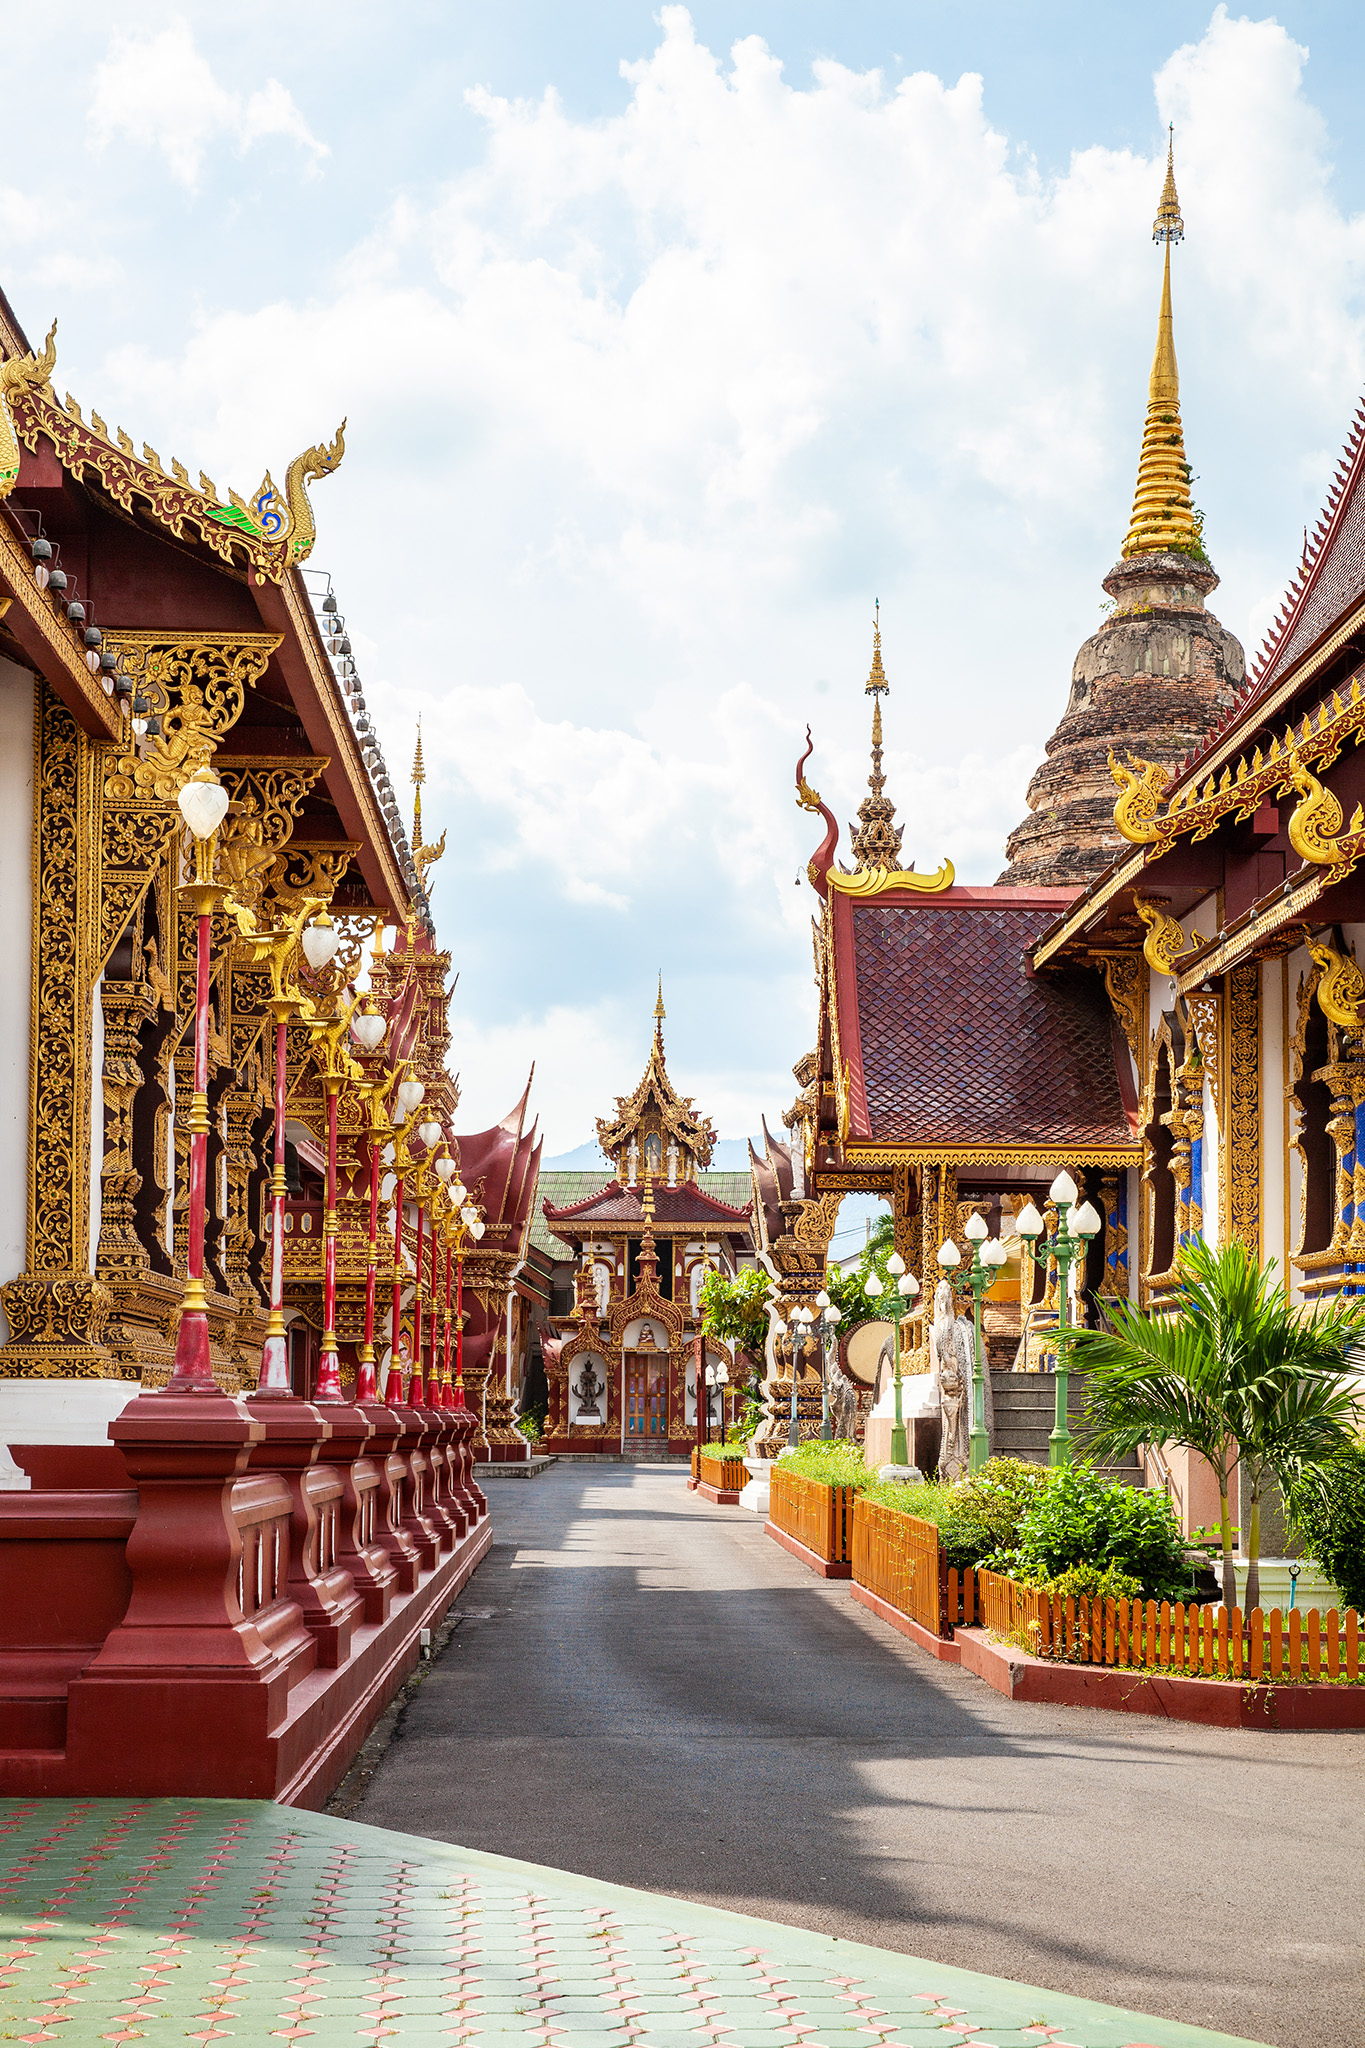 Intricate and ornate details abound at Wat Saen Muang Ma Luang